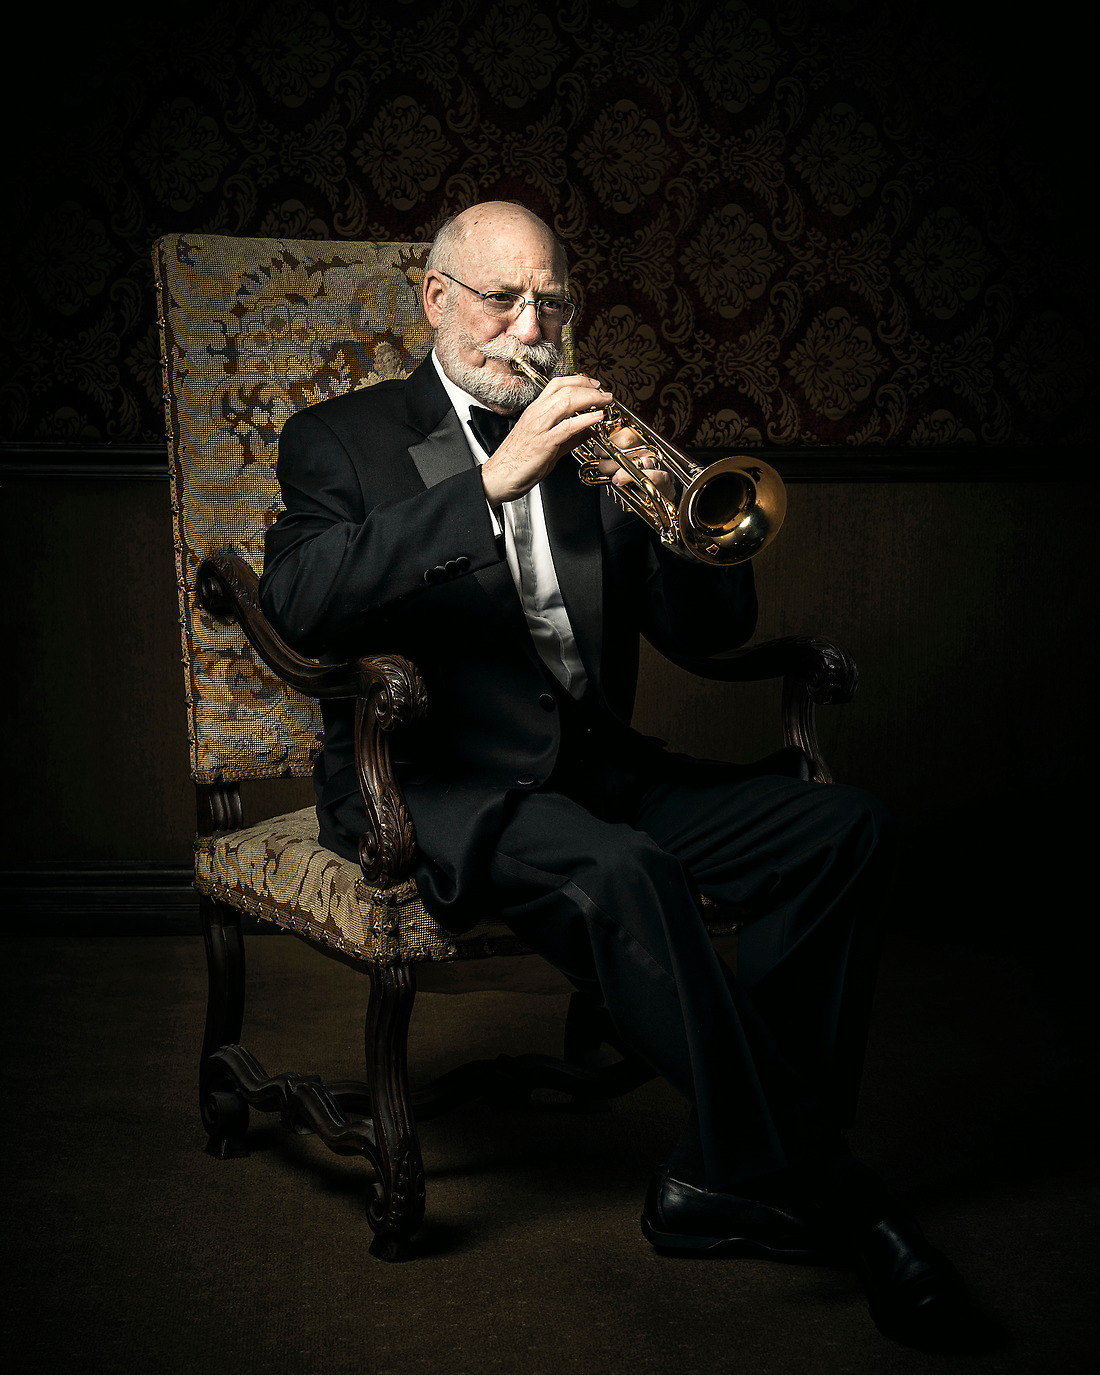 Ronald Romm International Trumpet Soloist / Clinician and former member of Canadian Brass. — © Jeremy Lock/